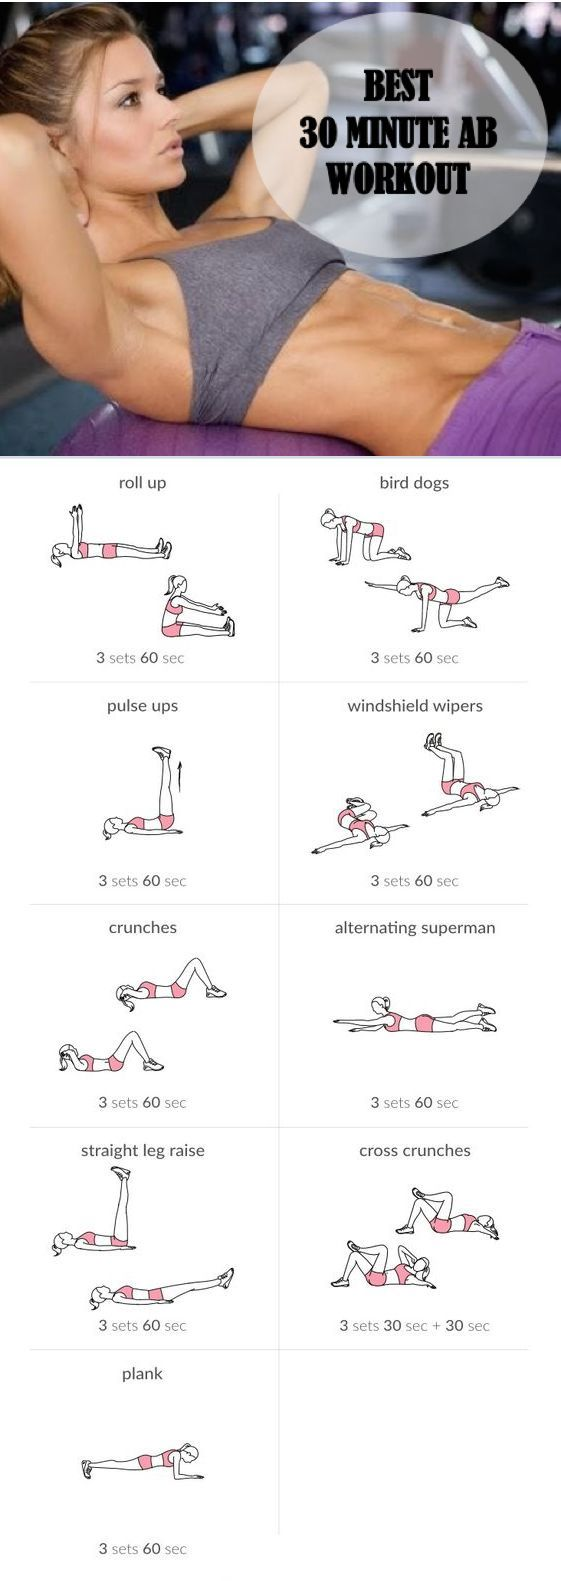 Great 30 minute ab workout to do to get ready for bathing suit season. Best part…